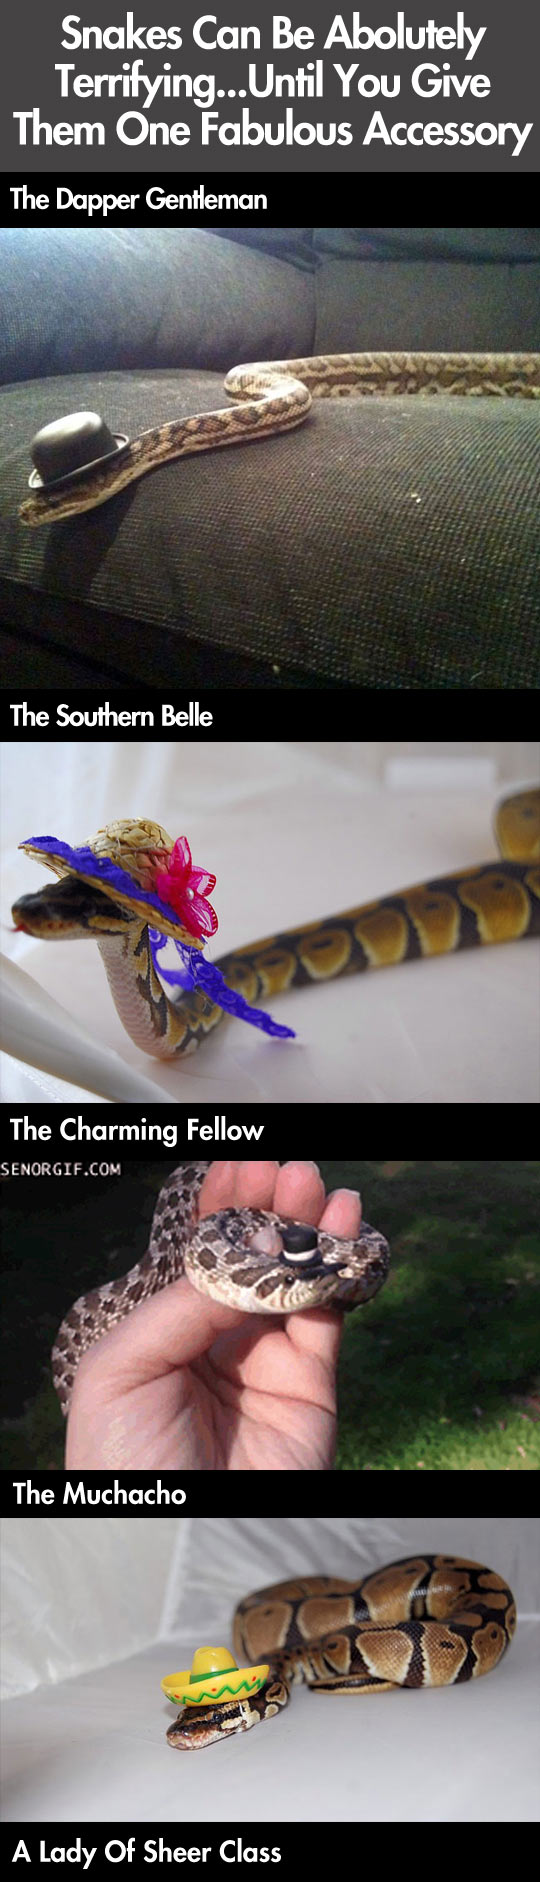 Snakes have never been more pretty...